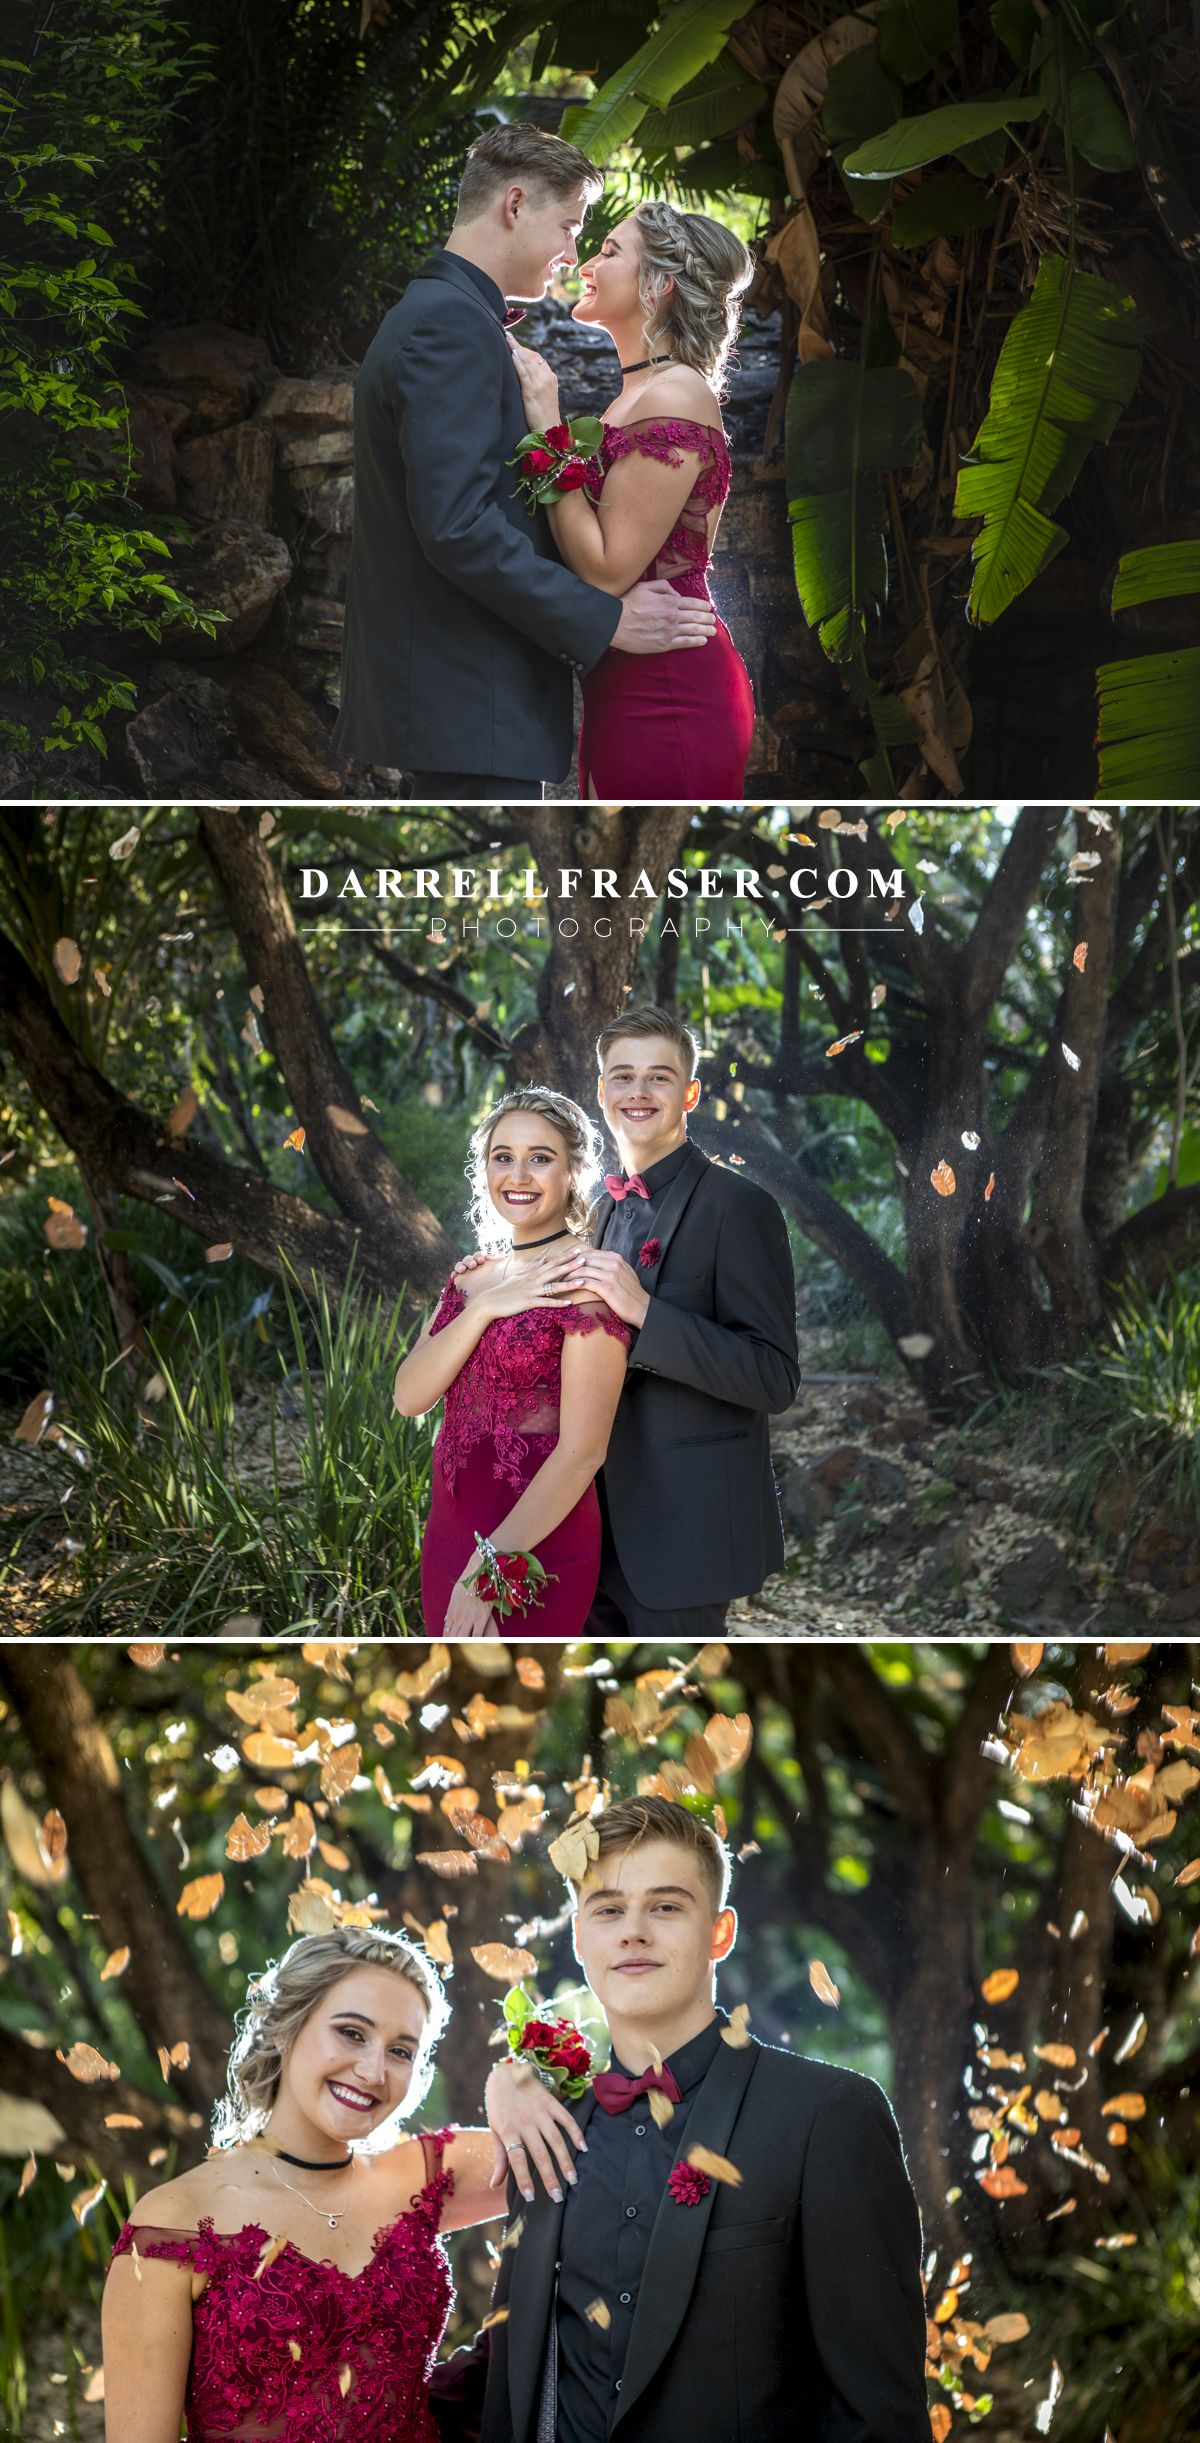 Pin On Matric Farewell Photography